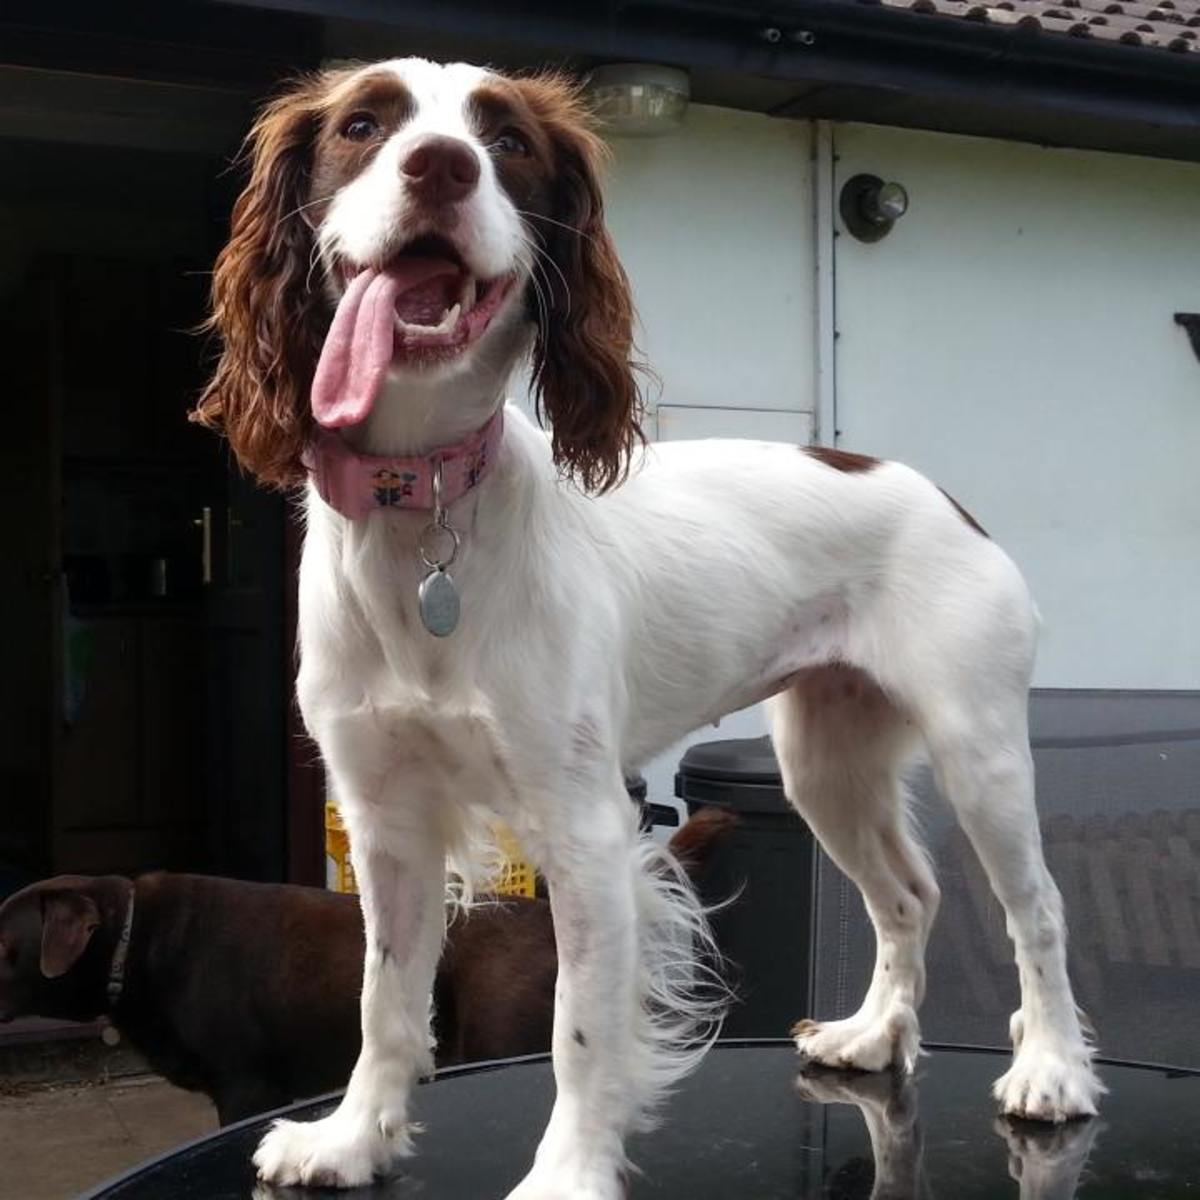 Sparrow, a working cocker spaniel, became ill with intussusception of the bowel in July 2015